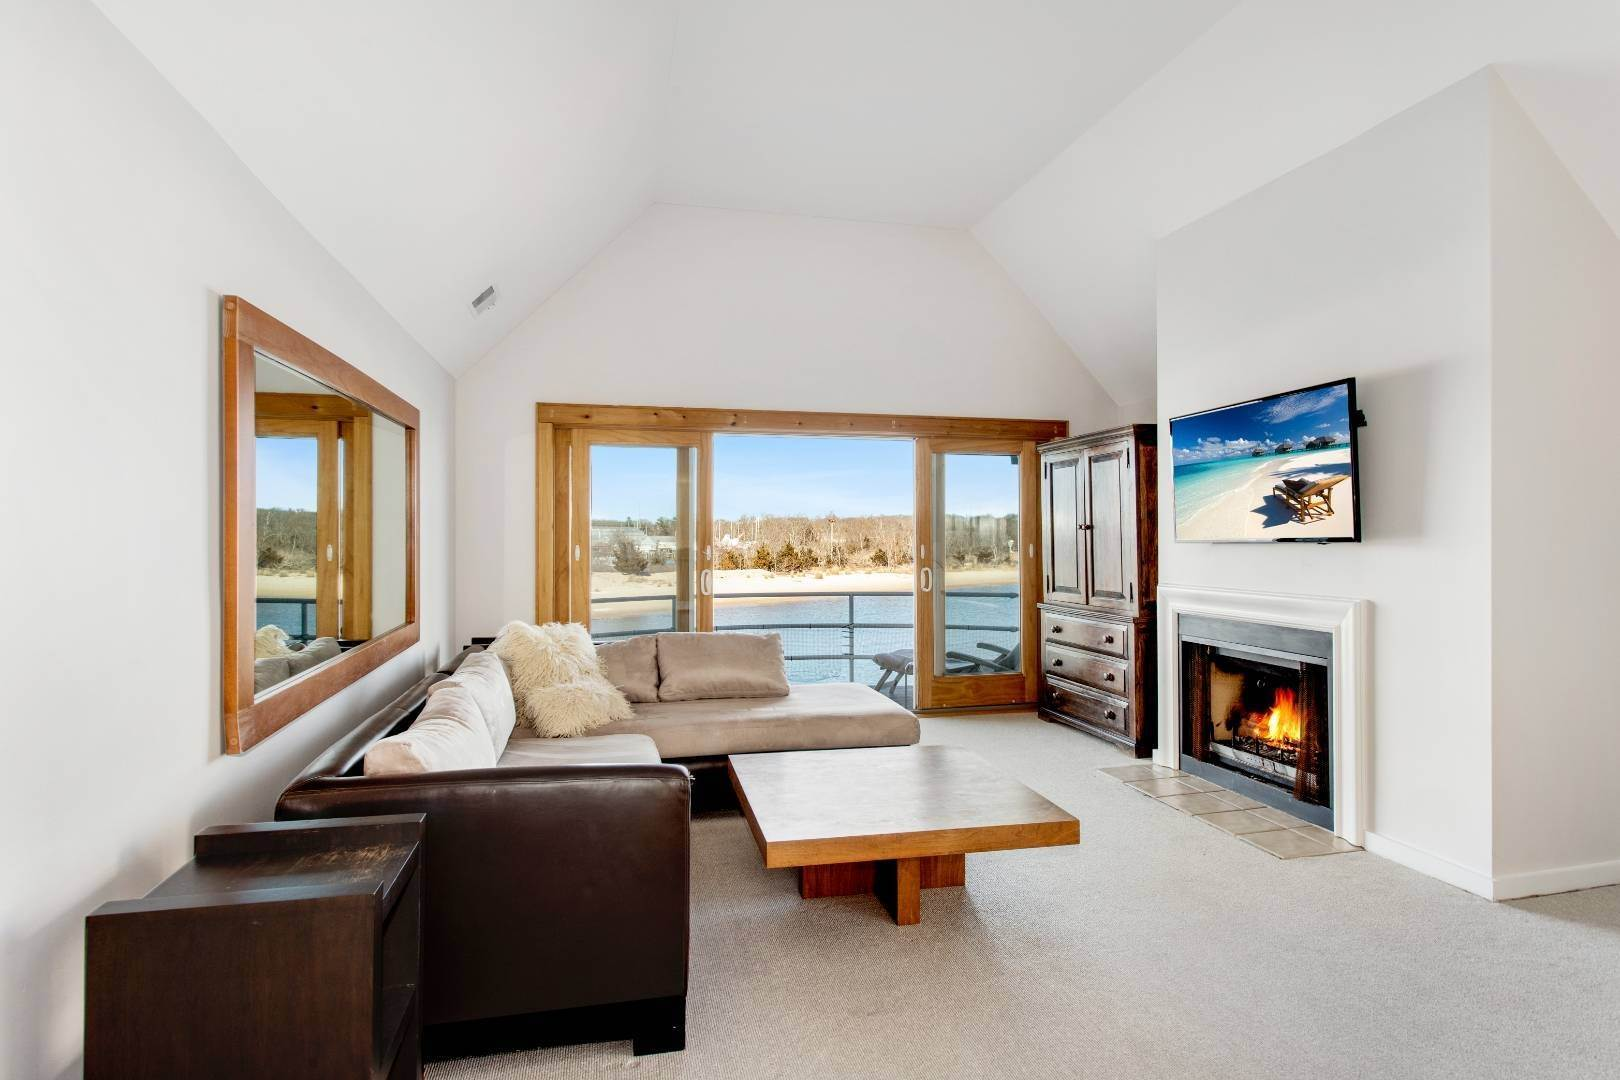 4. Condominiums for Sale at Vacation Vibes 41 Stirling Cove, Greenport Village, NY 11944